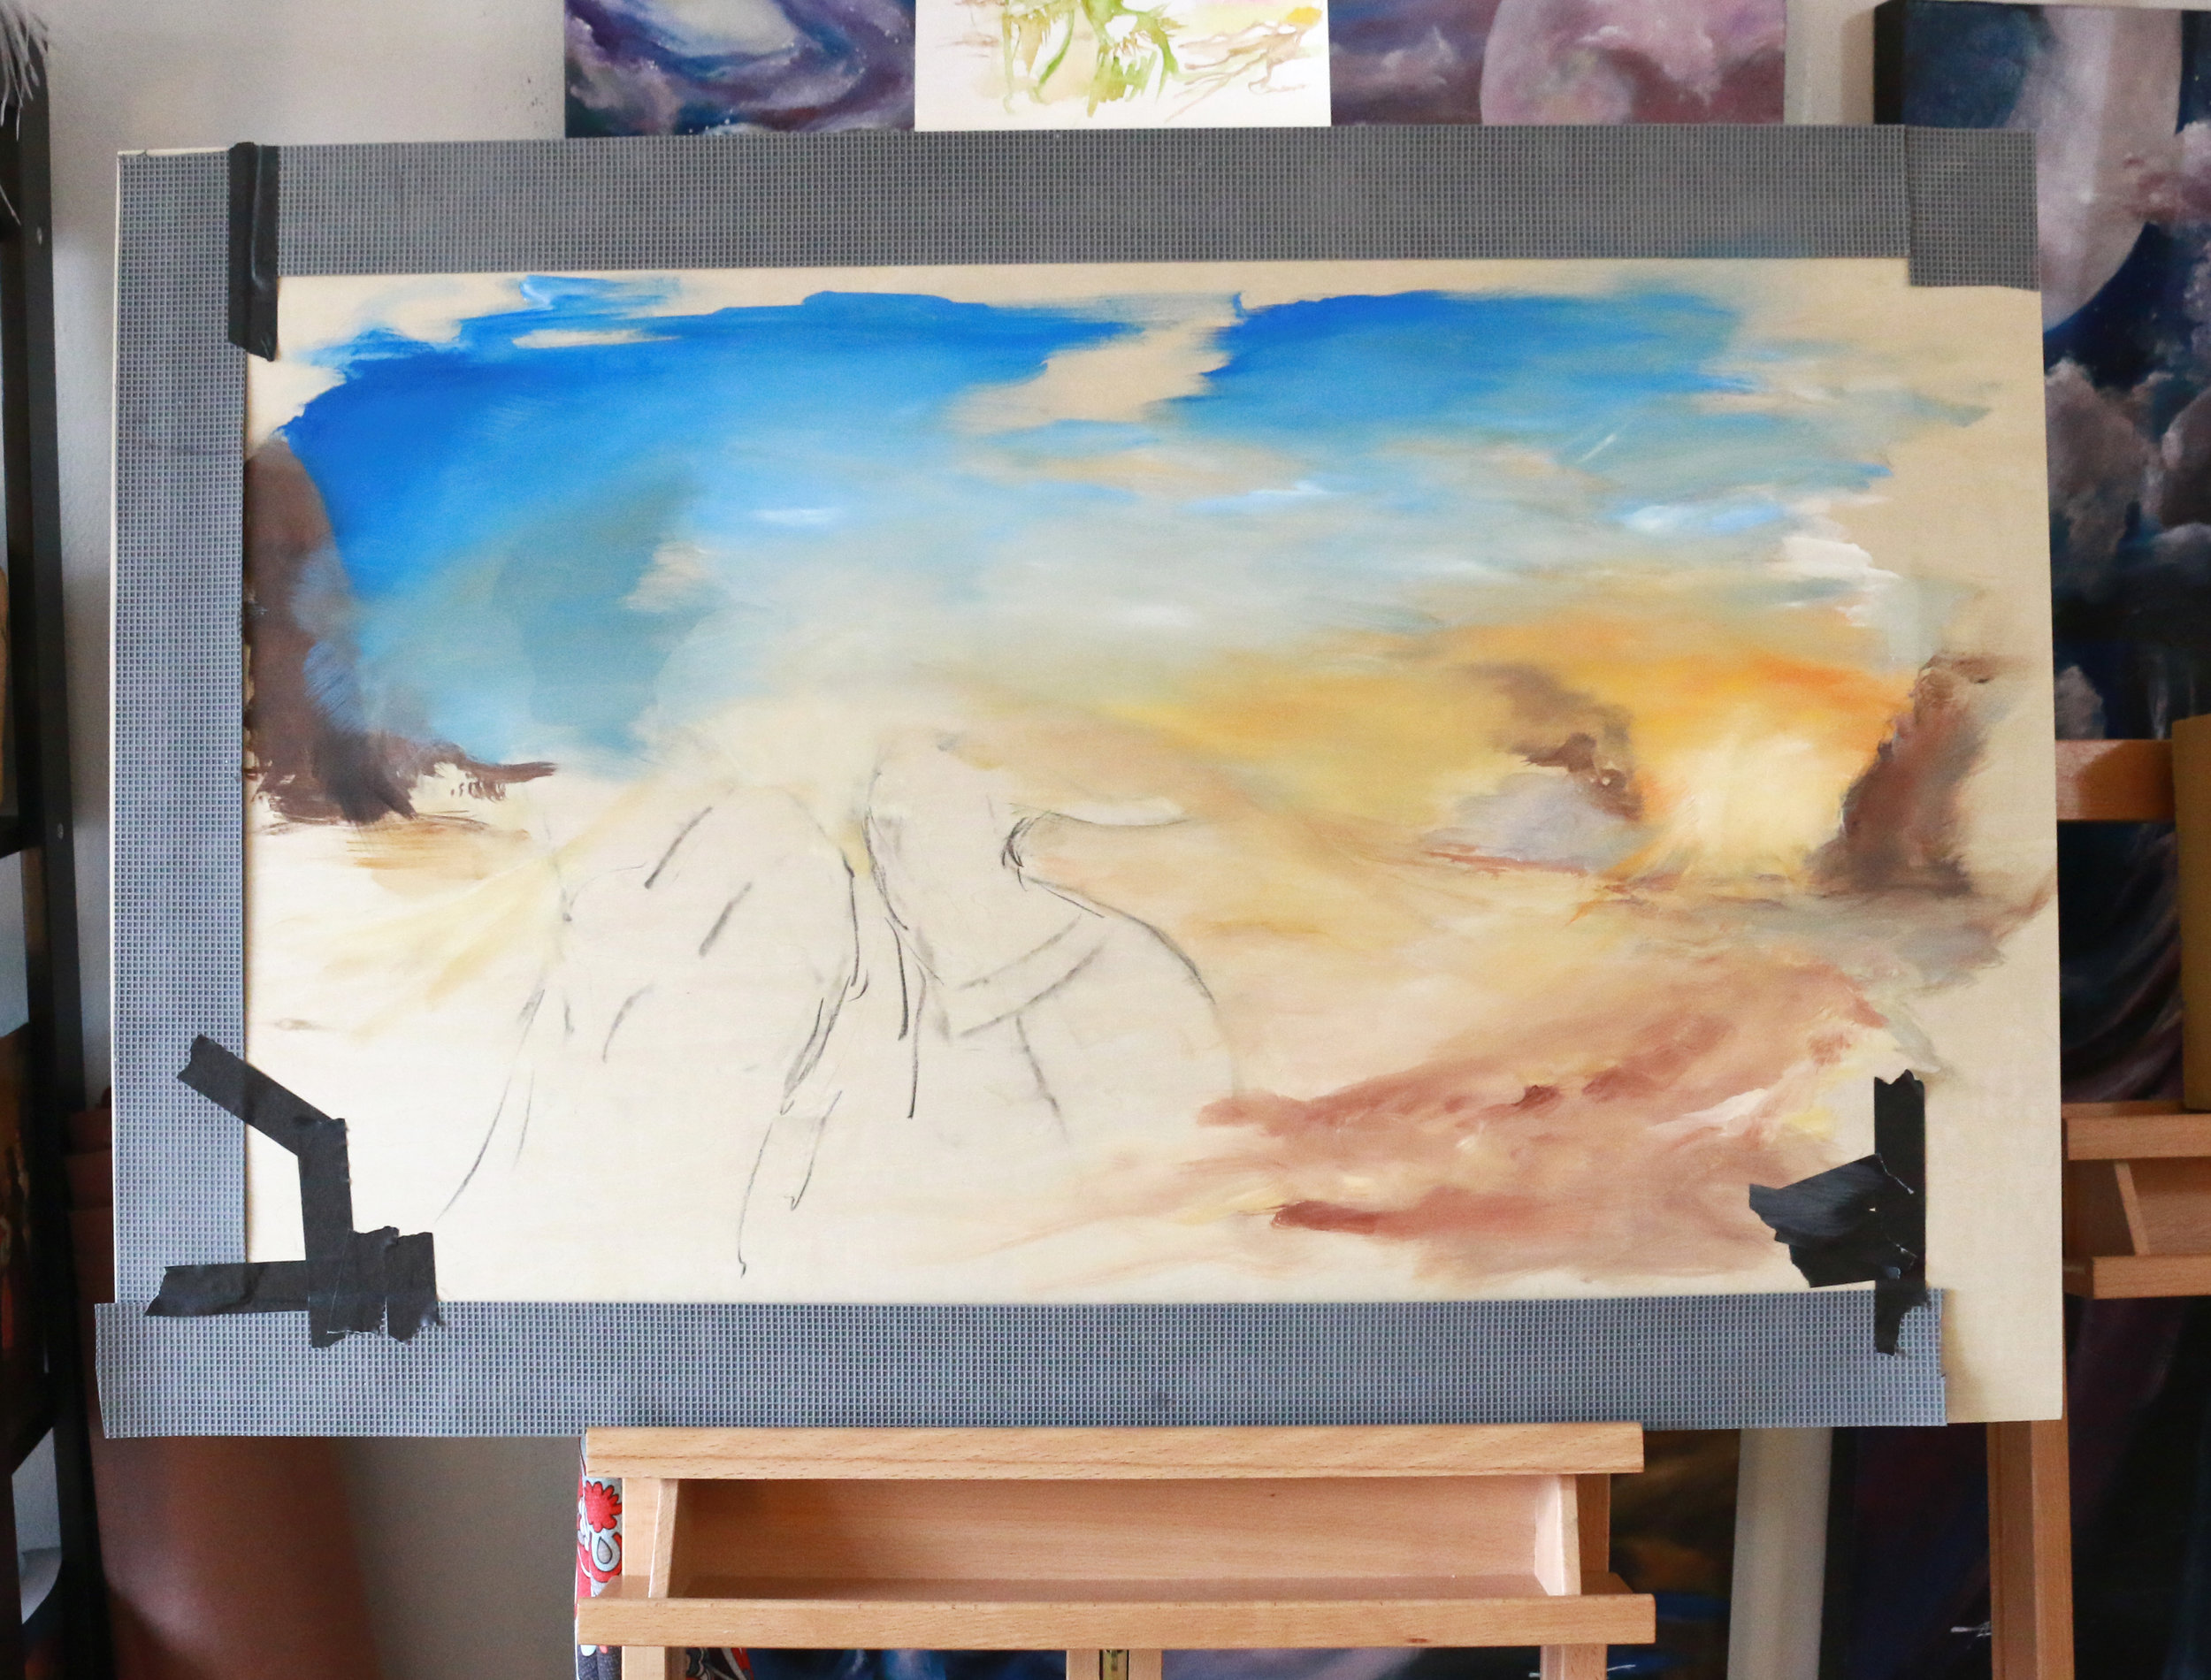 """Image take on the first round of this painting! This is the very beginning stages of the """"Mommy and Me"""" Belly Dance commission I'm excited for! Dancing together towards the sun.... :D"""